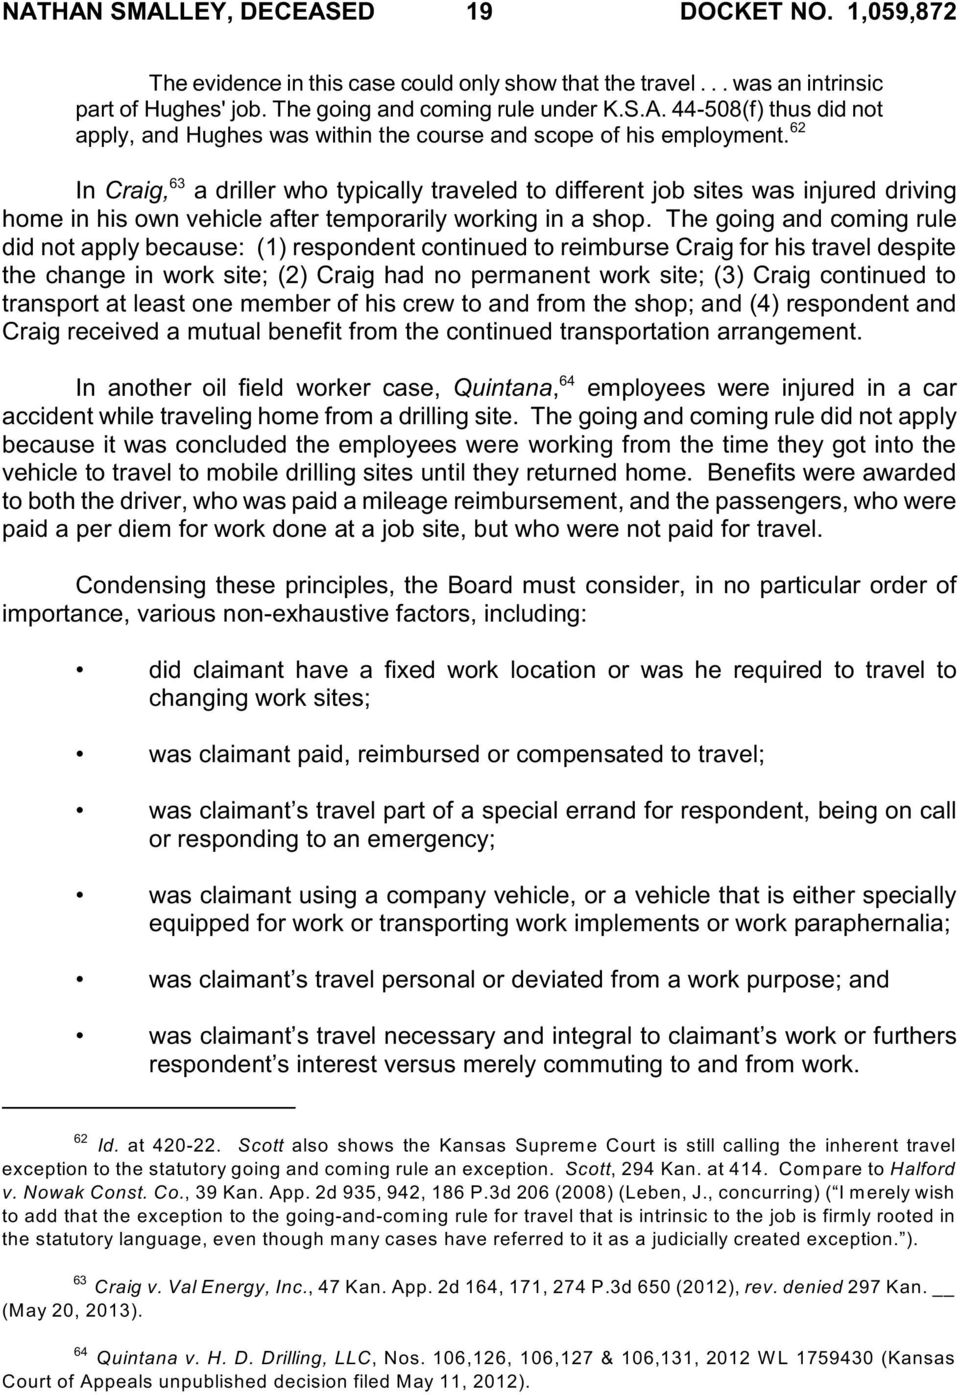 The going and coming rule did not apply because: (1) respondent continued to reimburse Craig for his travel despite the change in work site; (2) Craig had no permanent work site; (3) Craig continued